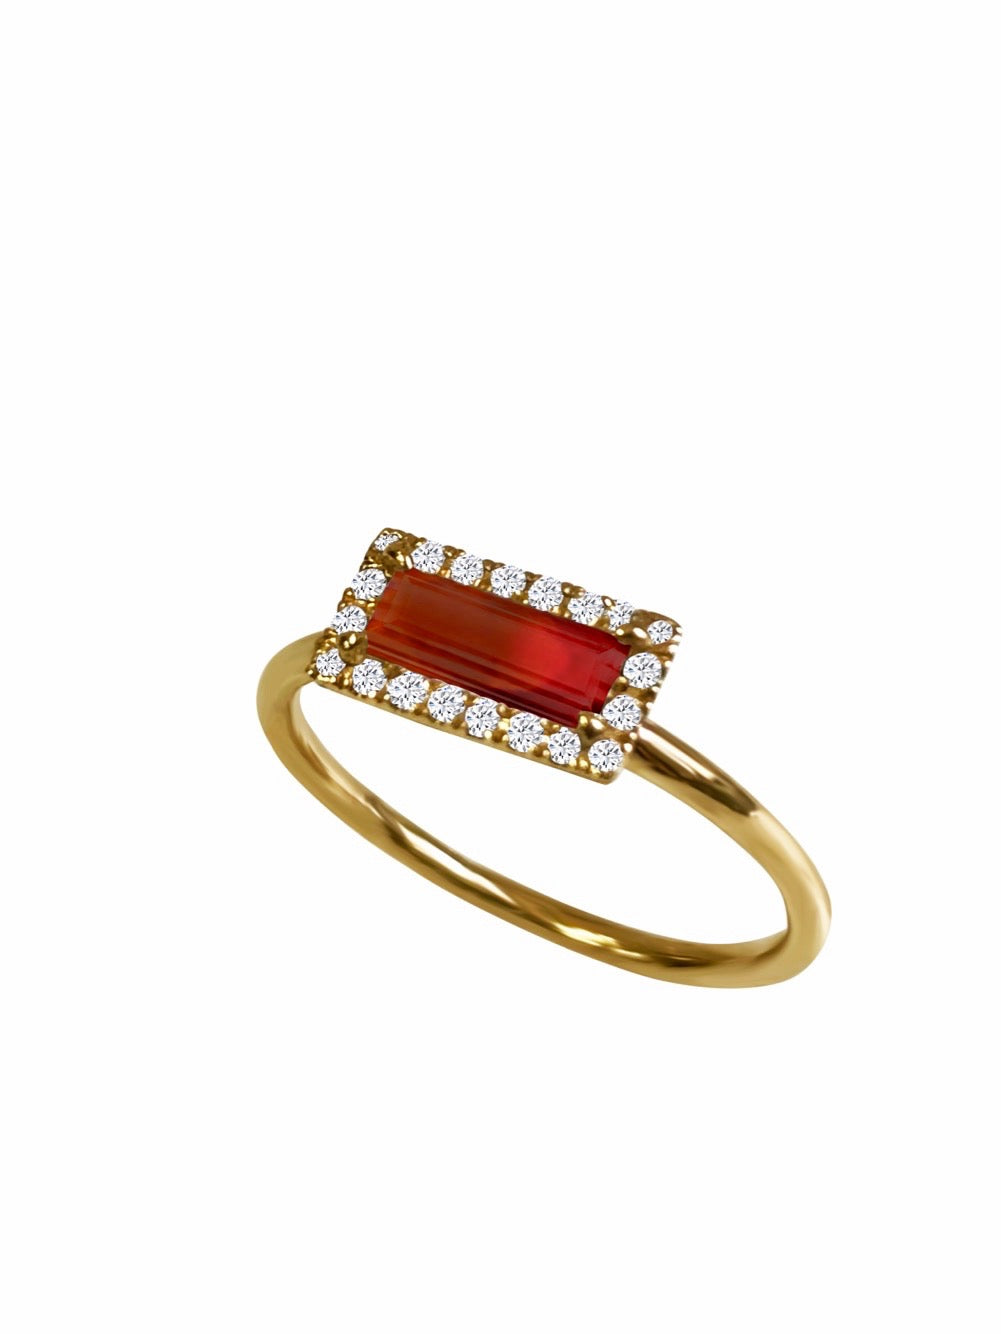 14k Gold Diamond Gemstone Baguette Ring